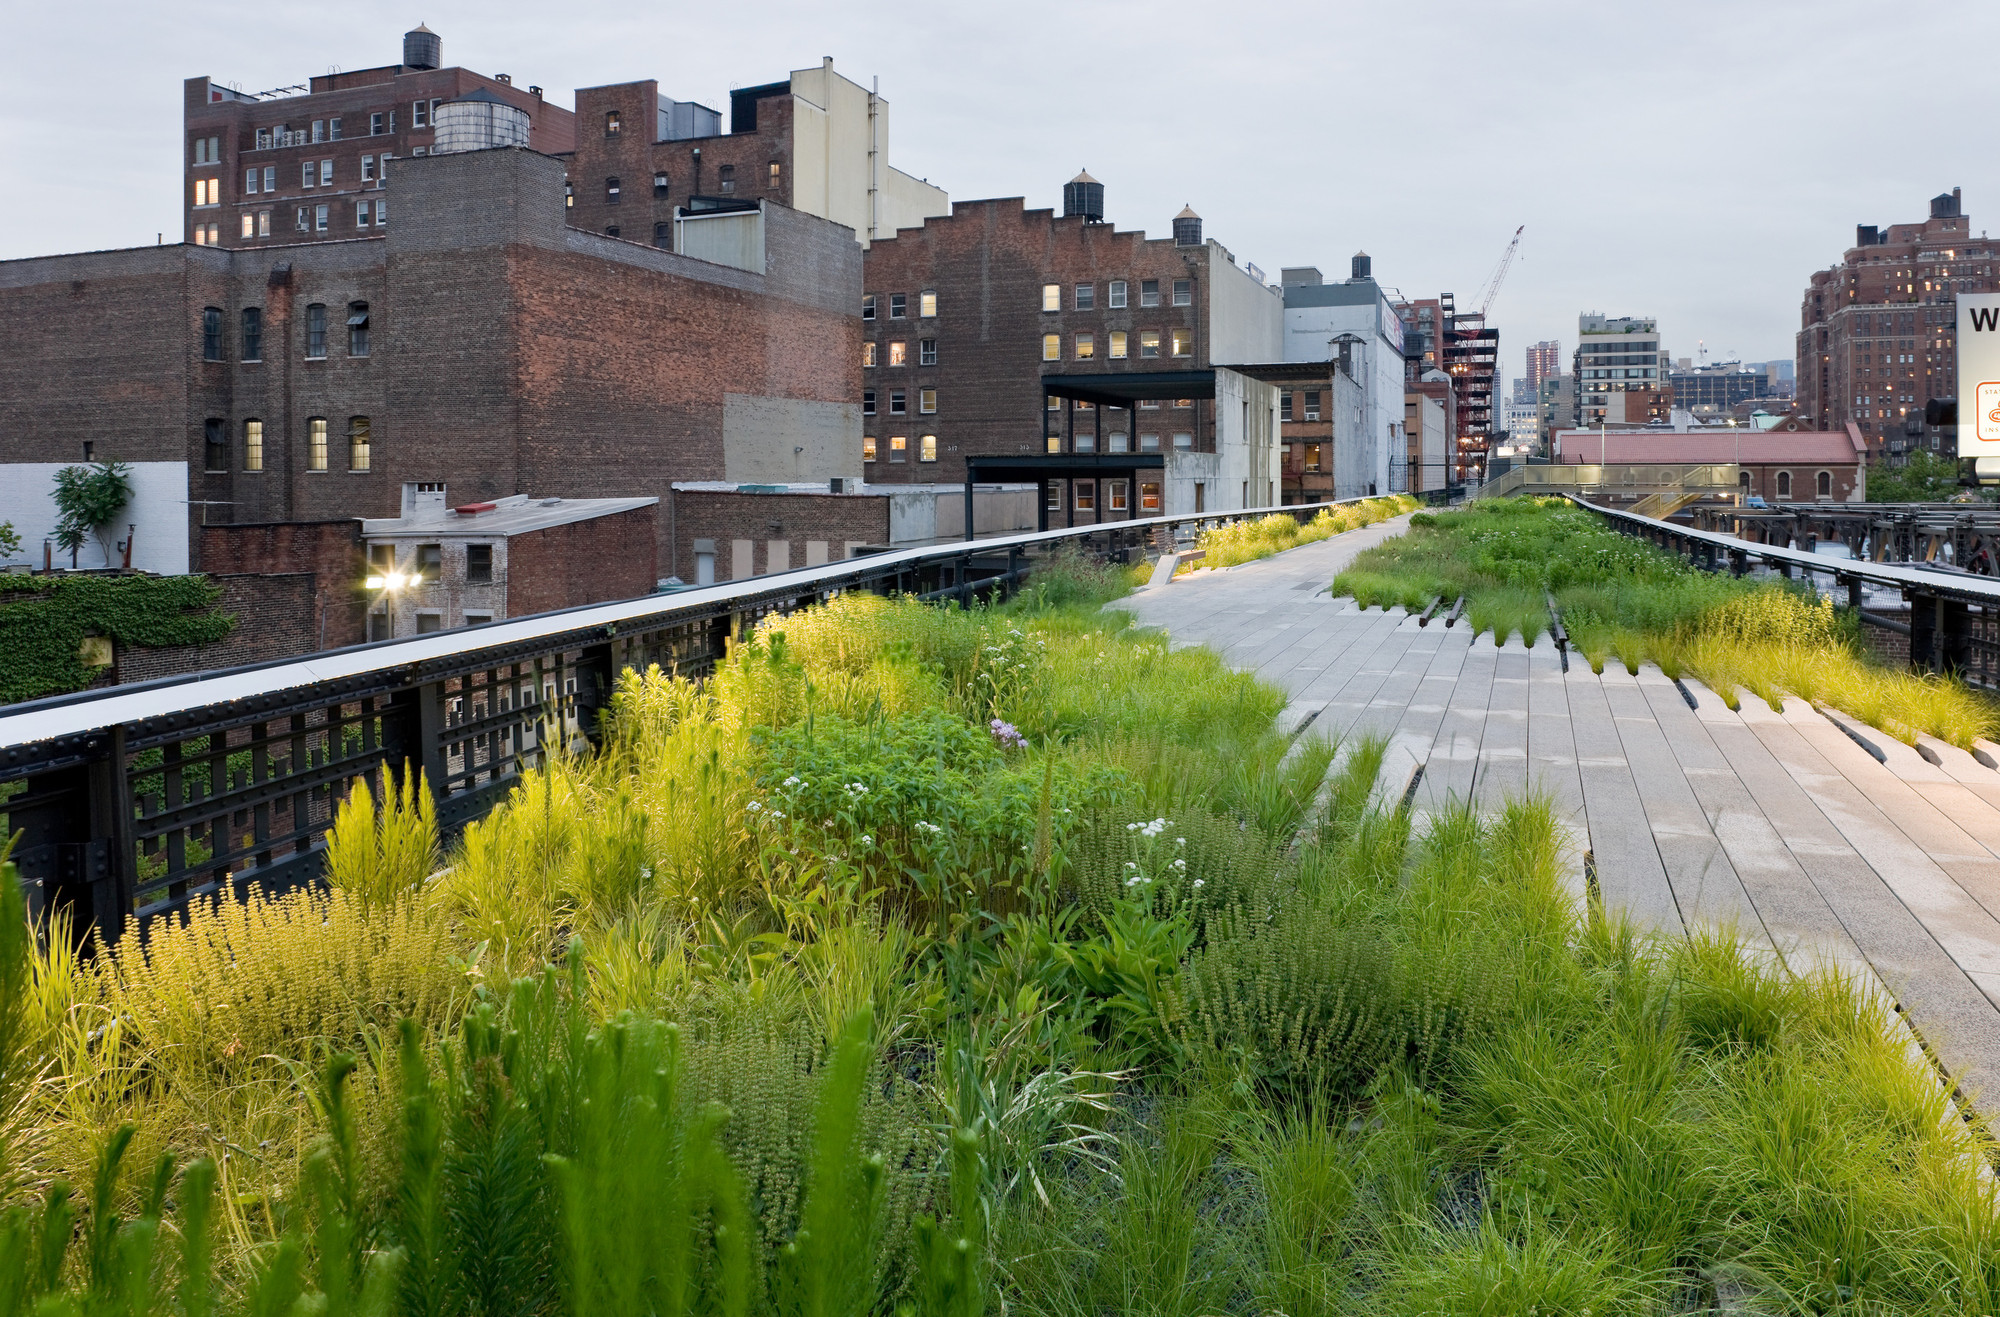 Chelsea Grasslands : Chelsea Grasslands, between West 19th Street and West 20th Street, looking North. Image © Iwan Baan, 2009 (Section 1)